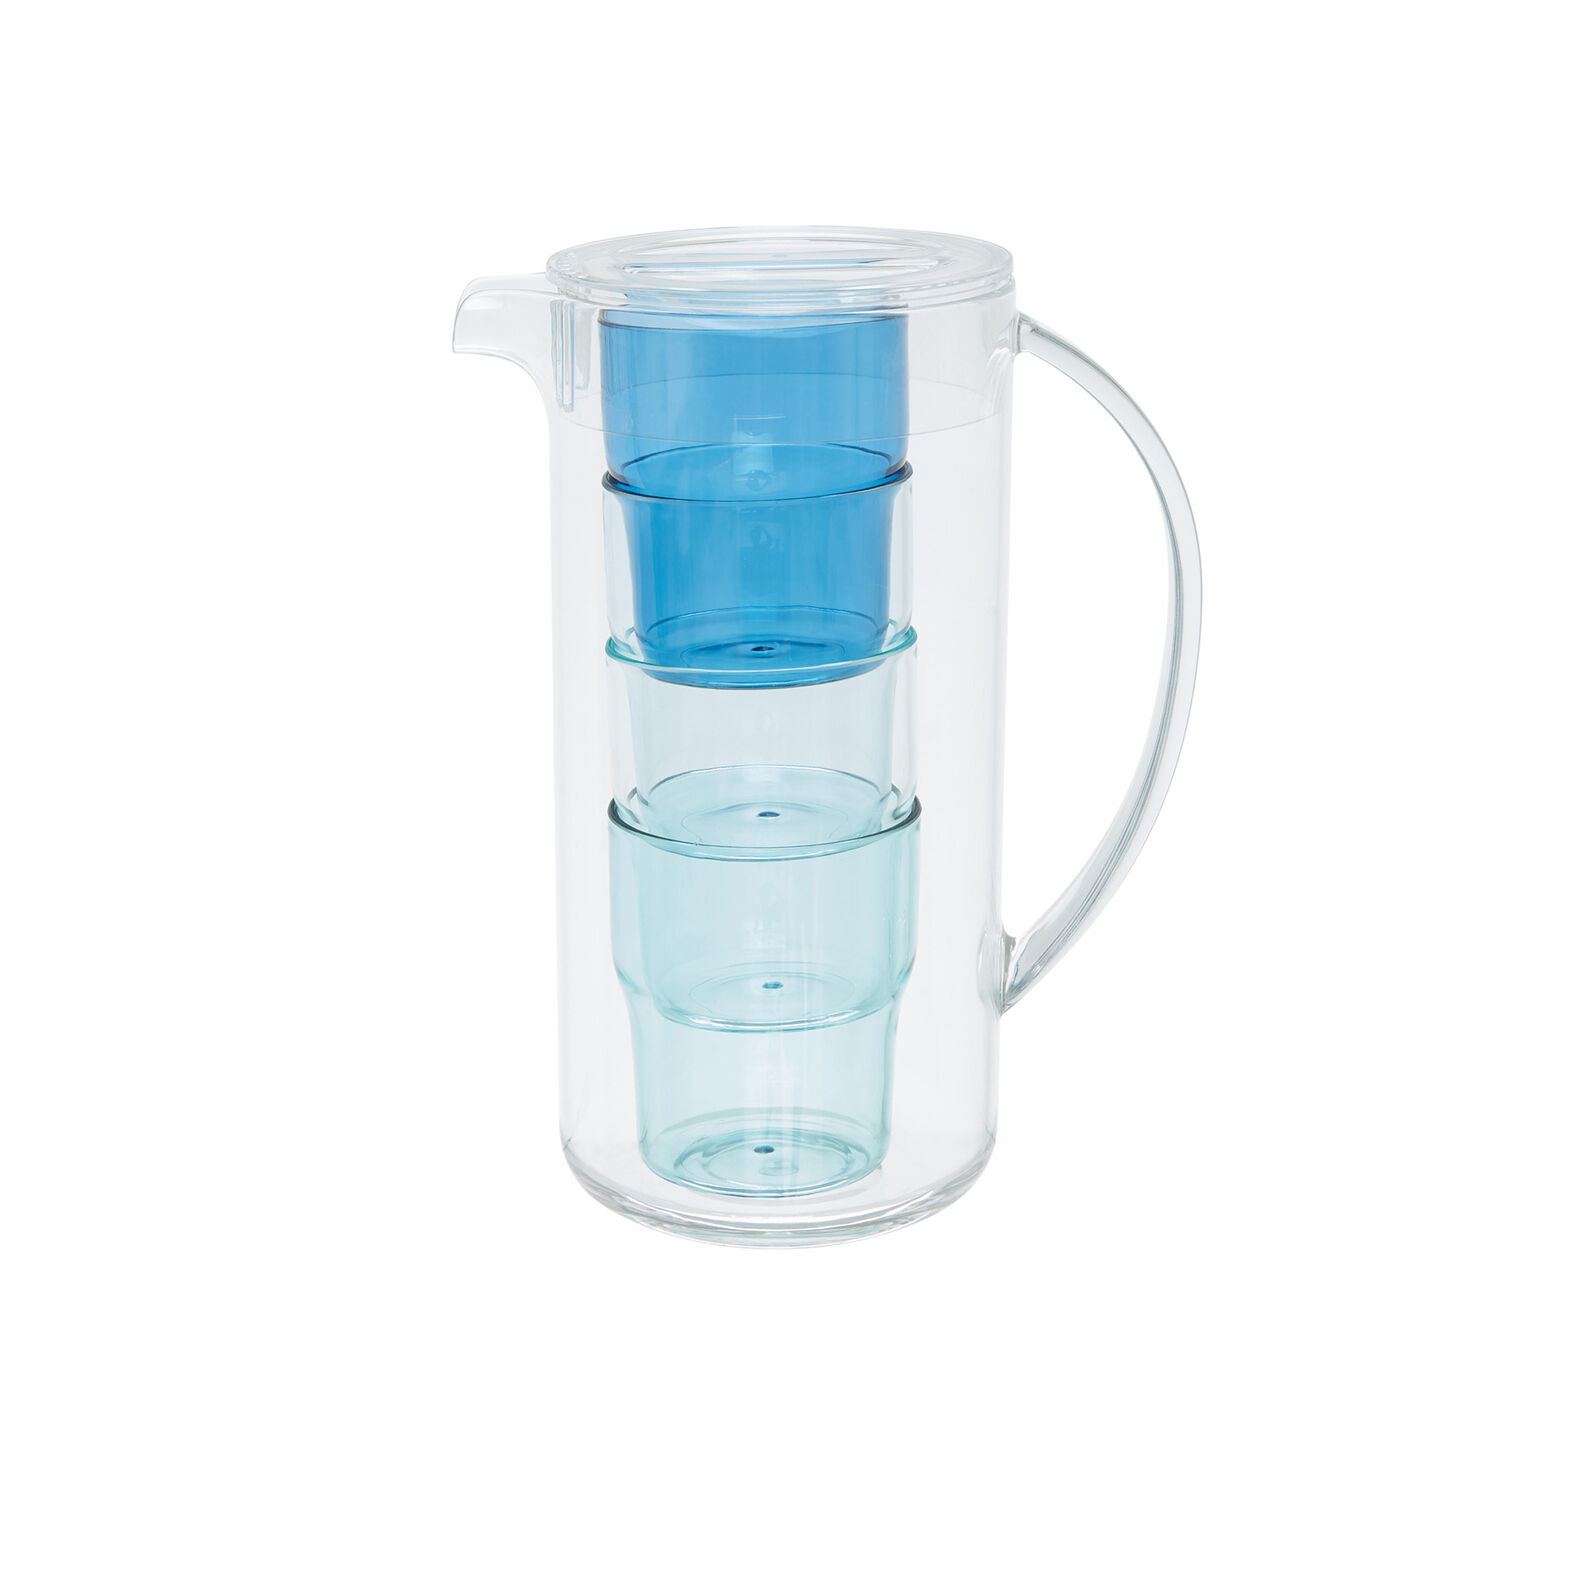 Plastic carafe with 4 glasses